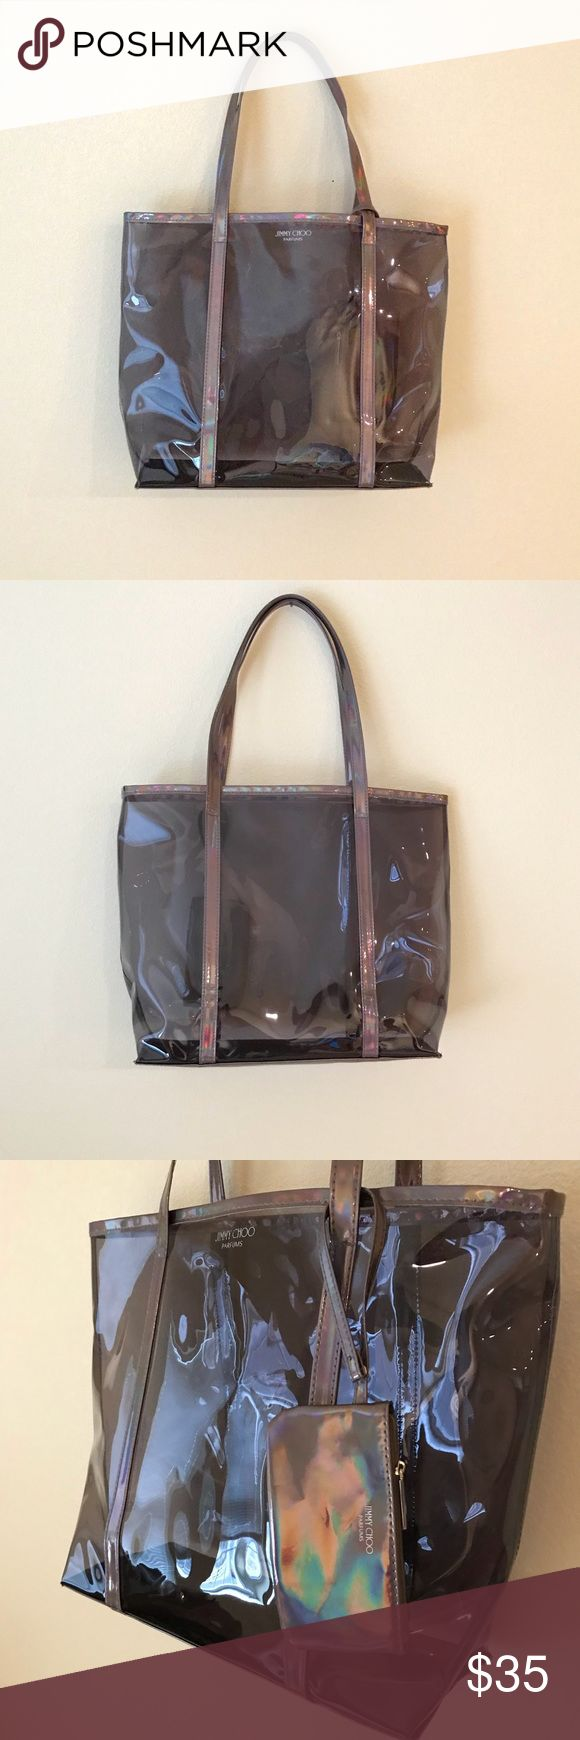 "Jimmy Choo Parfums Iridescent Purple Clear Tote Comes with a small pouch. Some creasing here & there. Approximate measurements when flat: Tote - length 14"" width 5 1/2"" height 13 1/4"" (no handle) 22"" (with handle). Small pouch - length 6"" height 3 1/2"" Jimmy Choo Bags Totes"